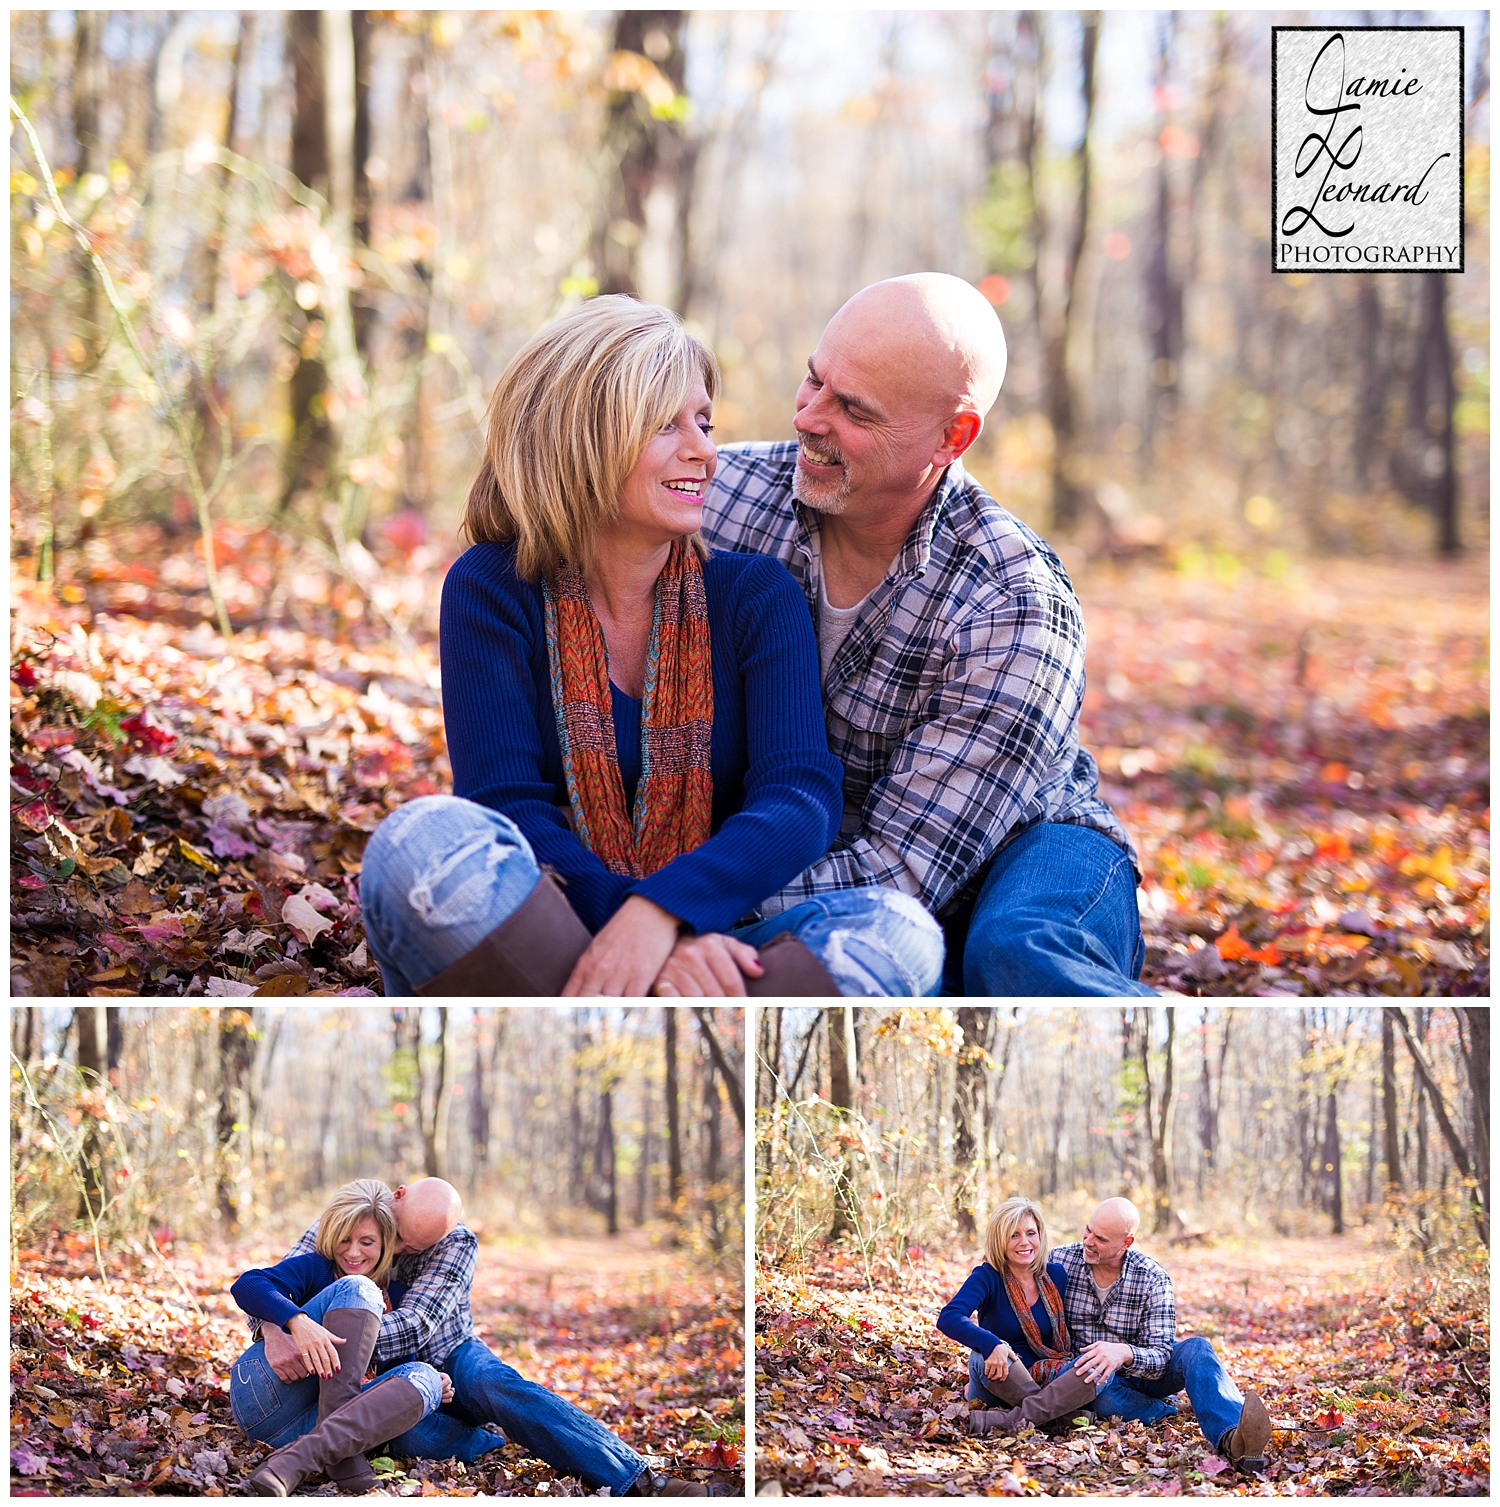 couple session, jamie leonard photography, fall session, engagement